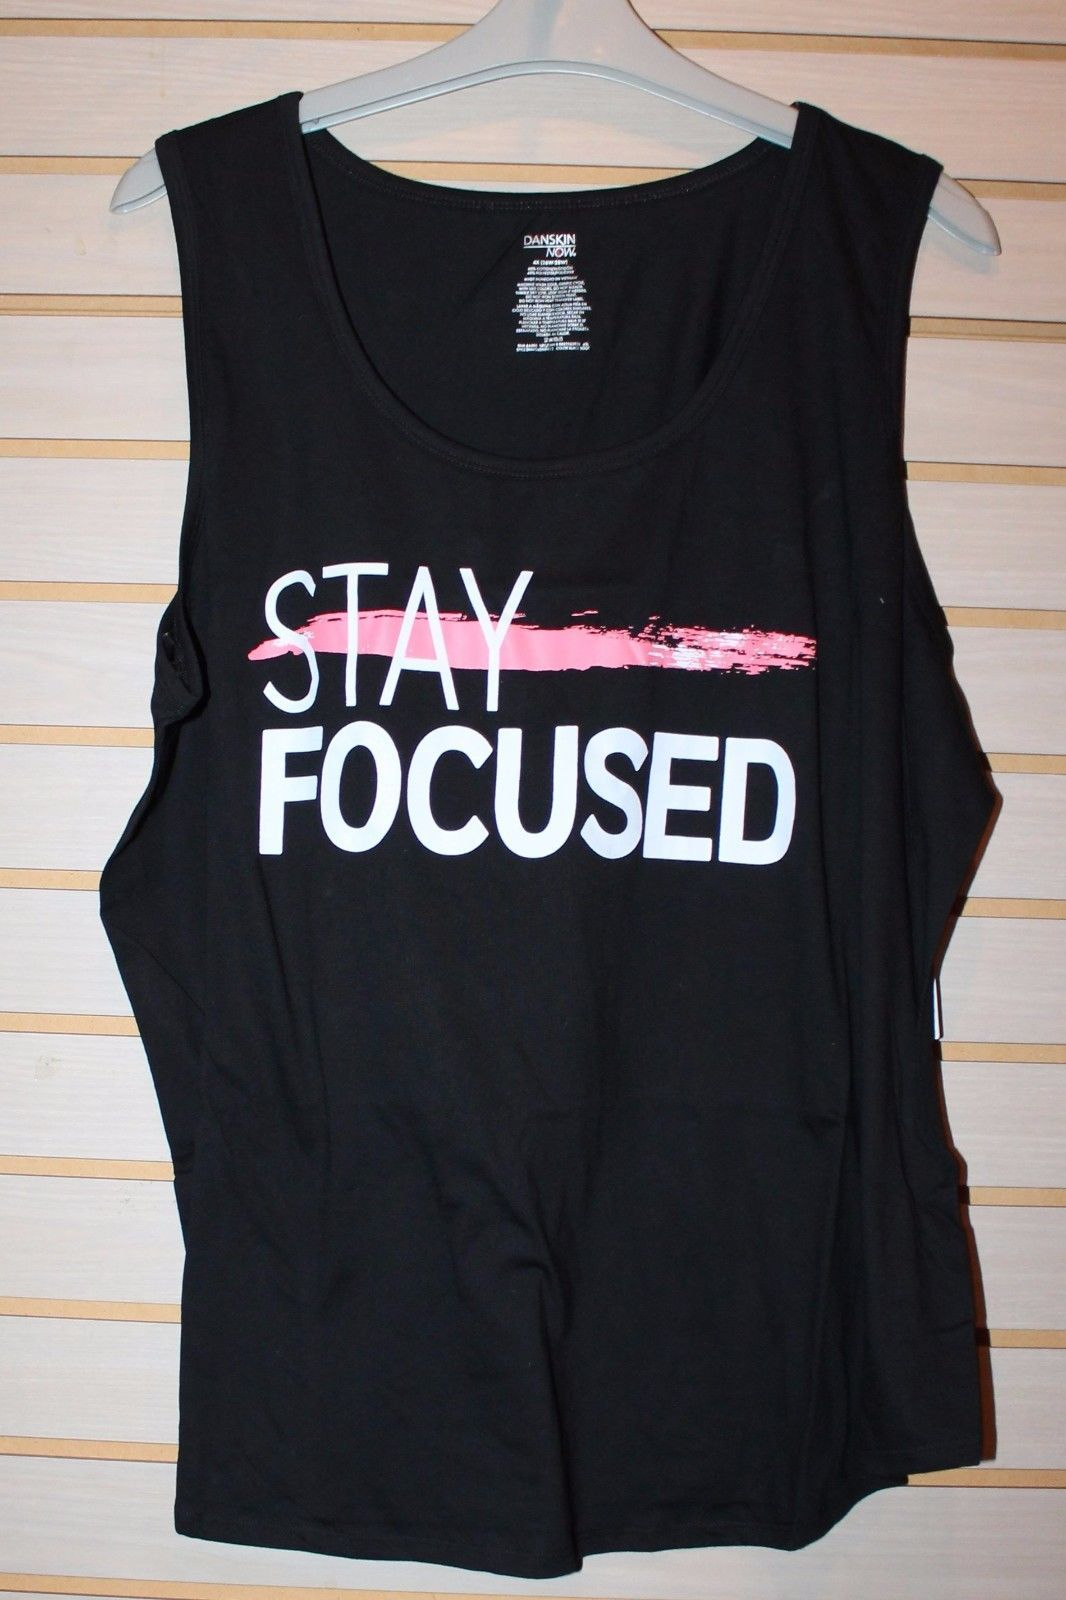 e0a00349bd8 S l1600. S l1600. Previous. NEW WOMENS PLUS SIZE 4X BLACK STAY FOCUSED MOTIVATIONAL  EXERCISE TANK TOP SHIRT